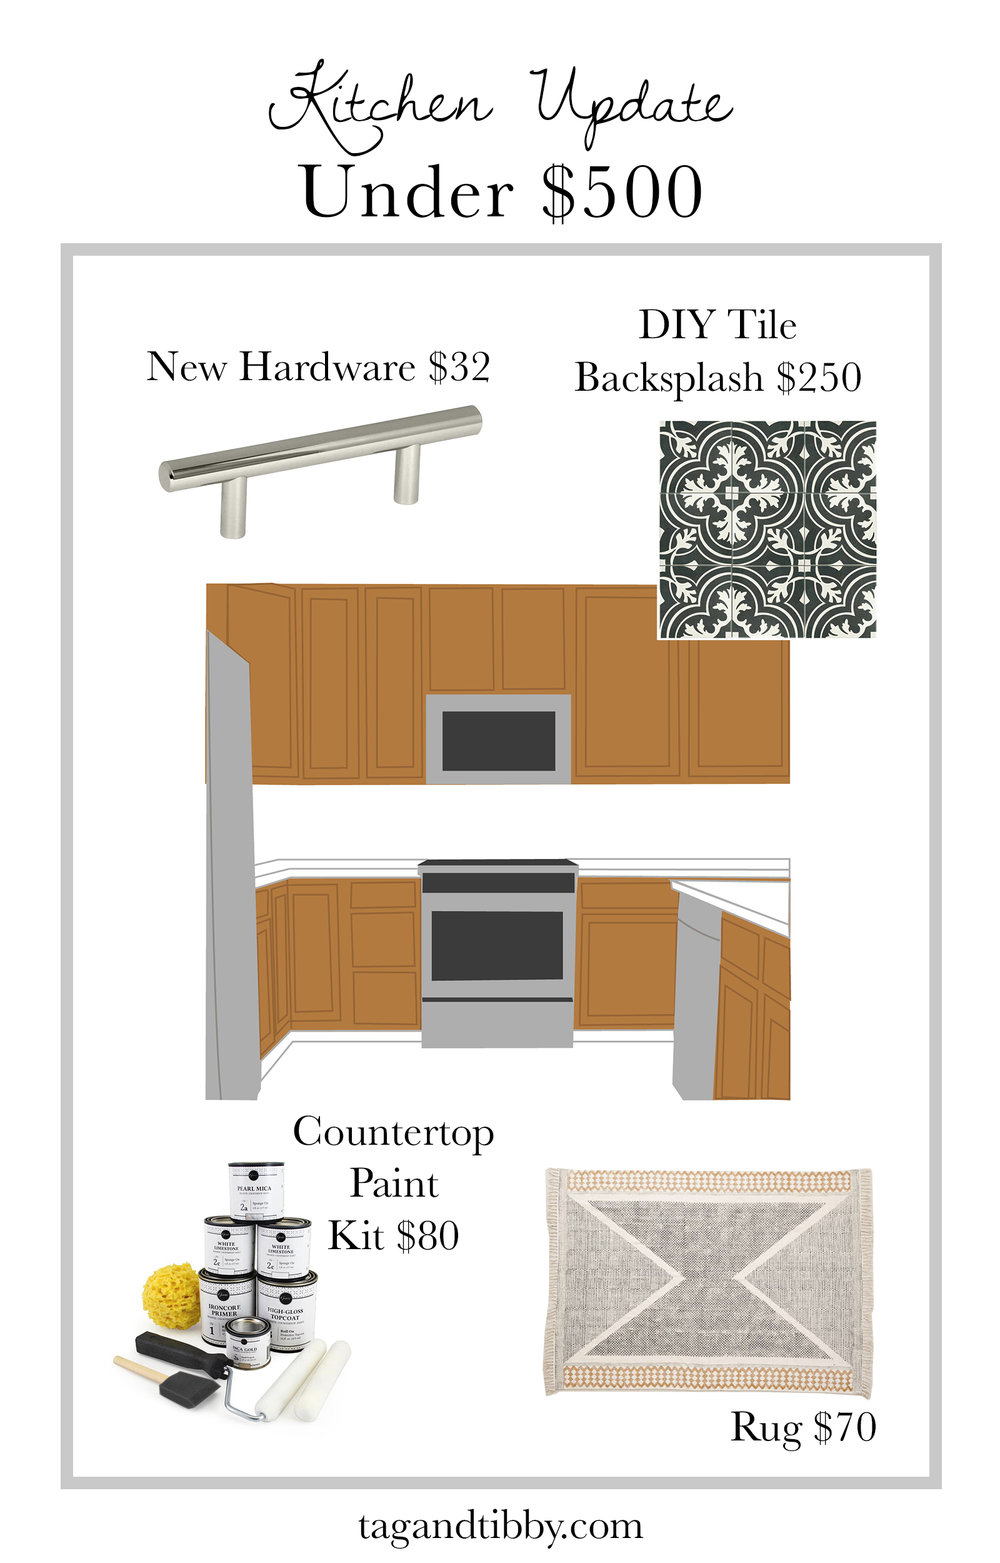 Remodel your kitchen for $500 with this small budget idea! | Tag & Tibby